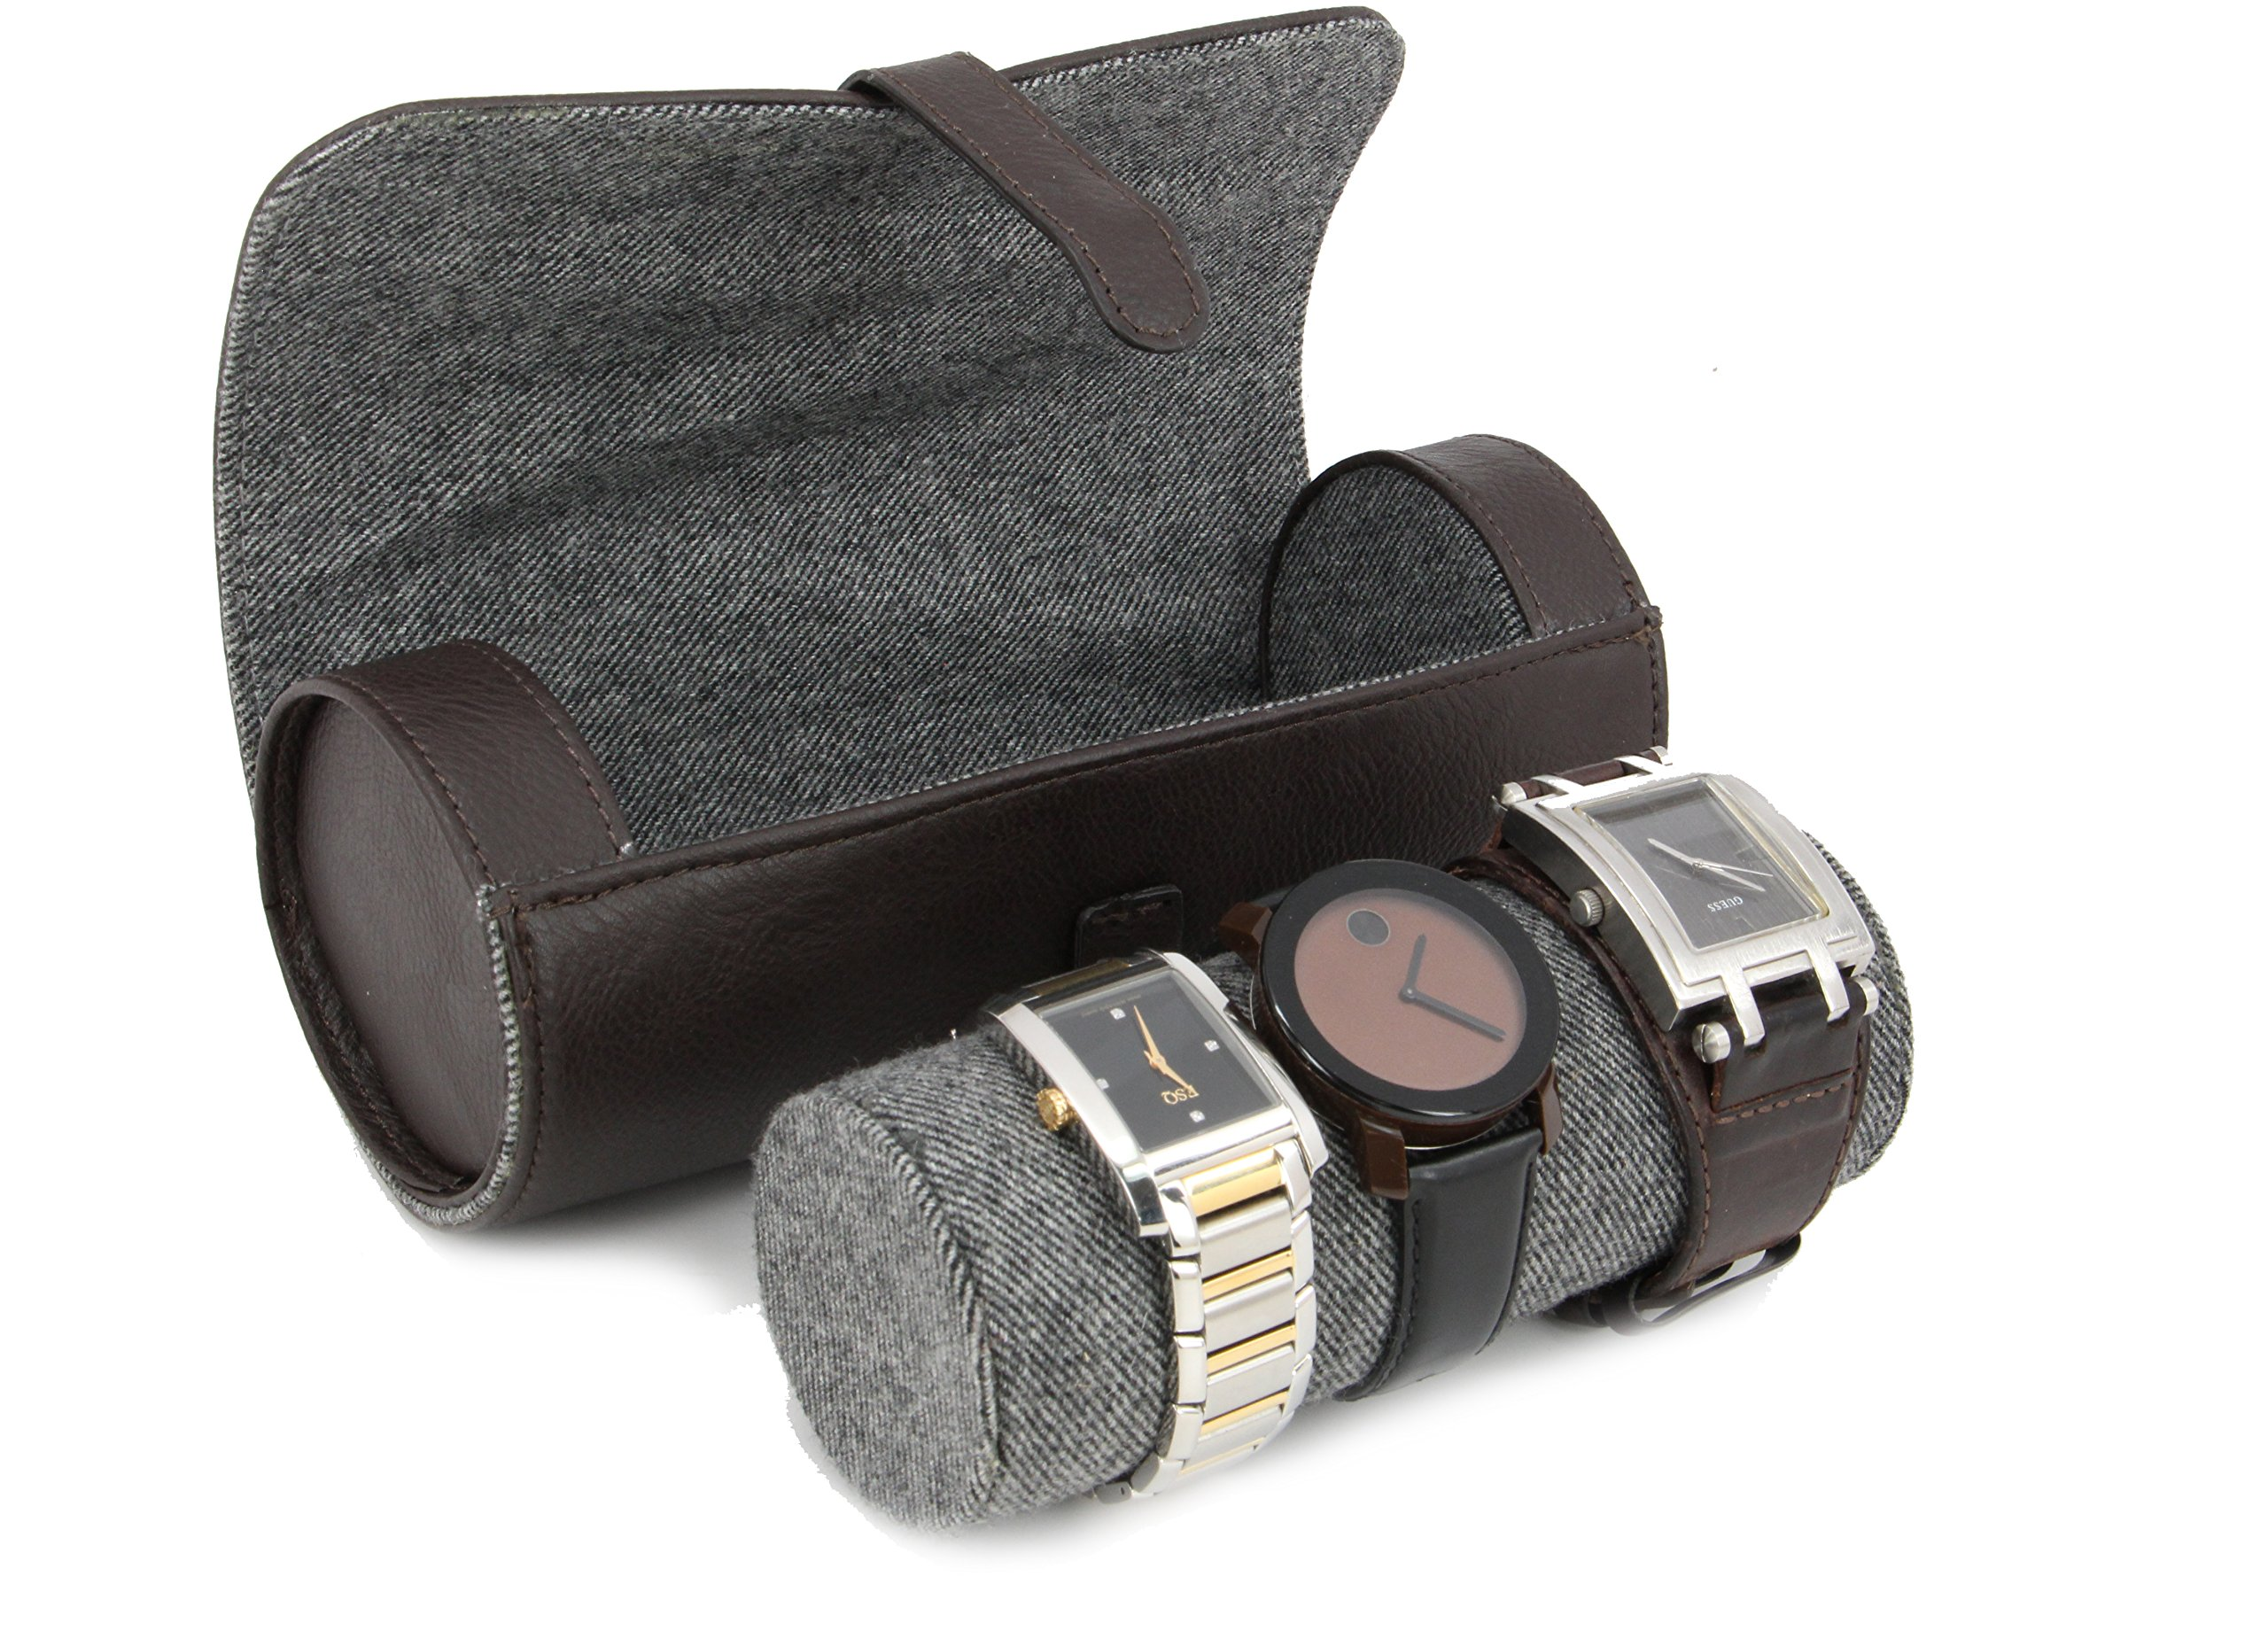 Executive High class Men's Watches and Bracelets Jewelry Box Gift (Buff) by decore Bay (Image #1)